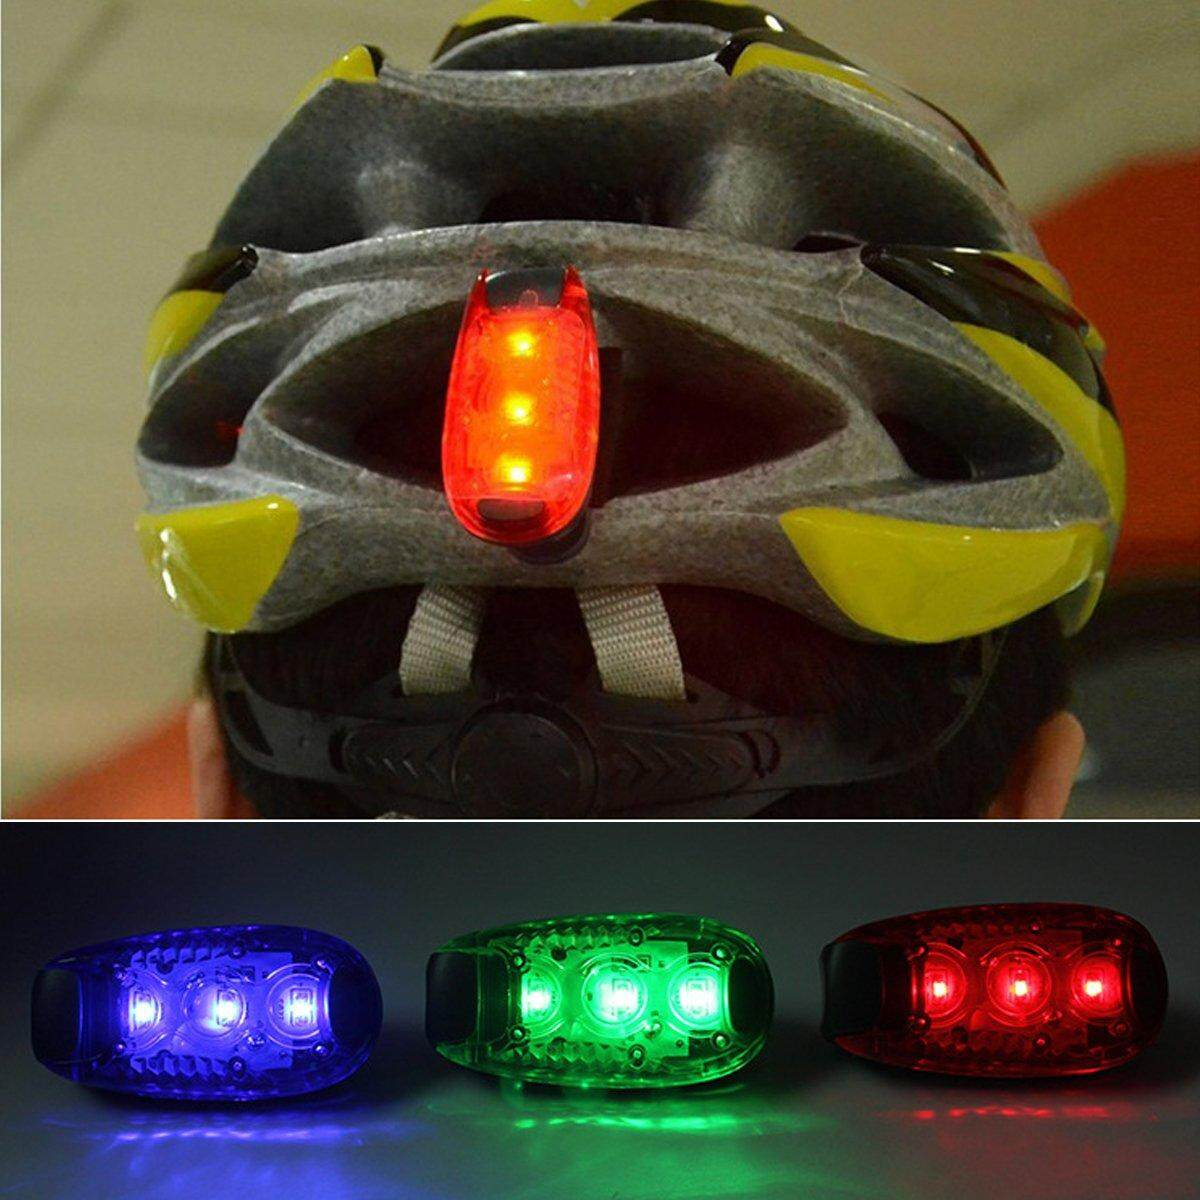 LED Light Up Safety Clip on Running Jogging Night Bike Bicycle Rear Light New